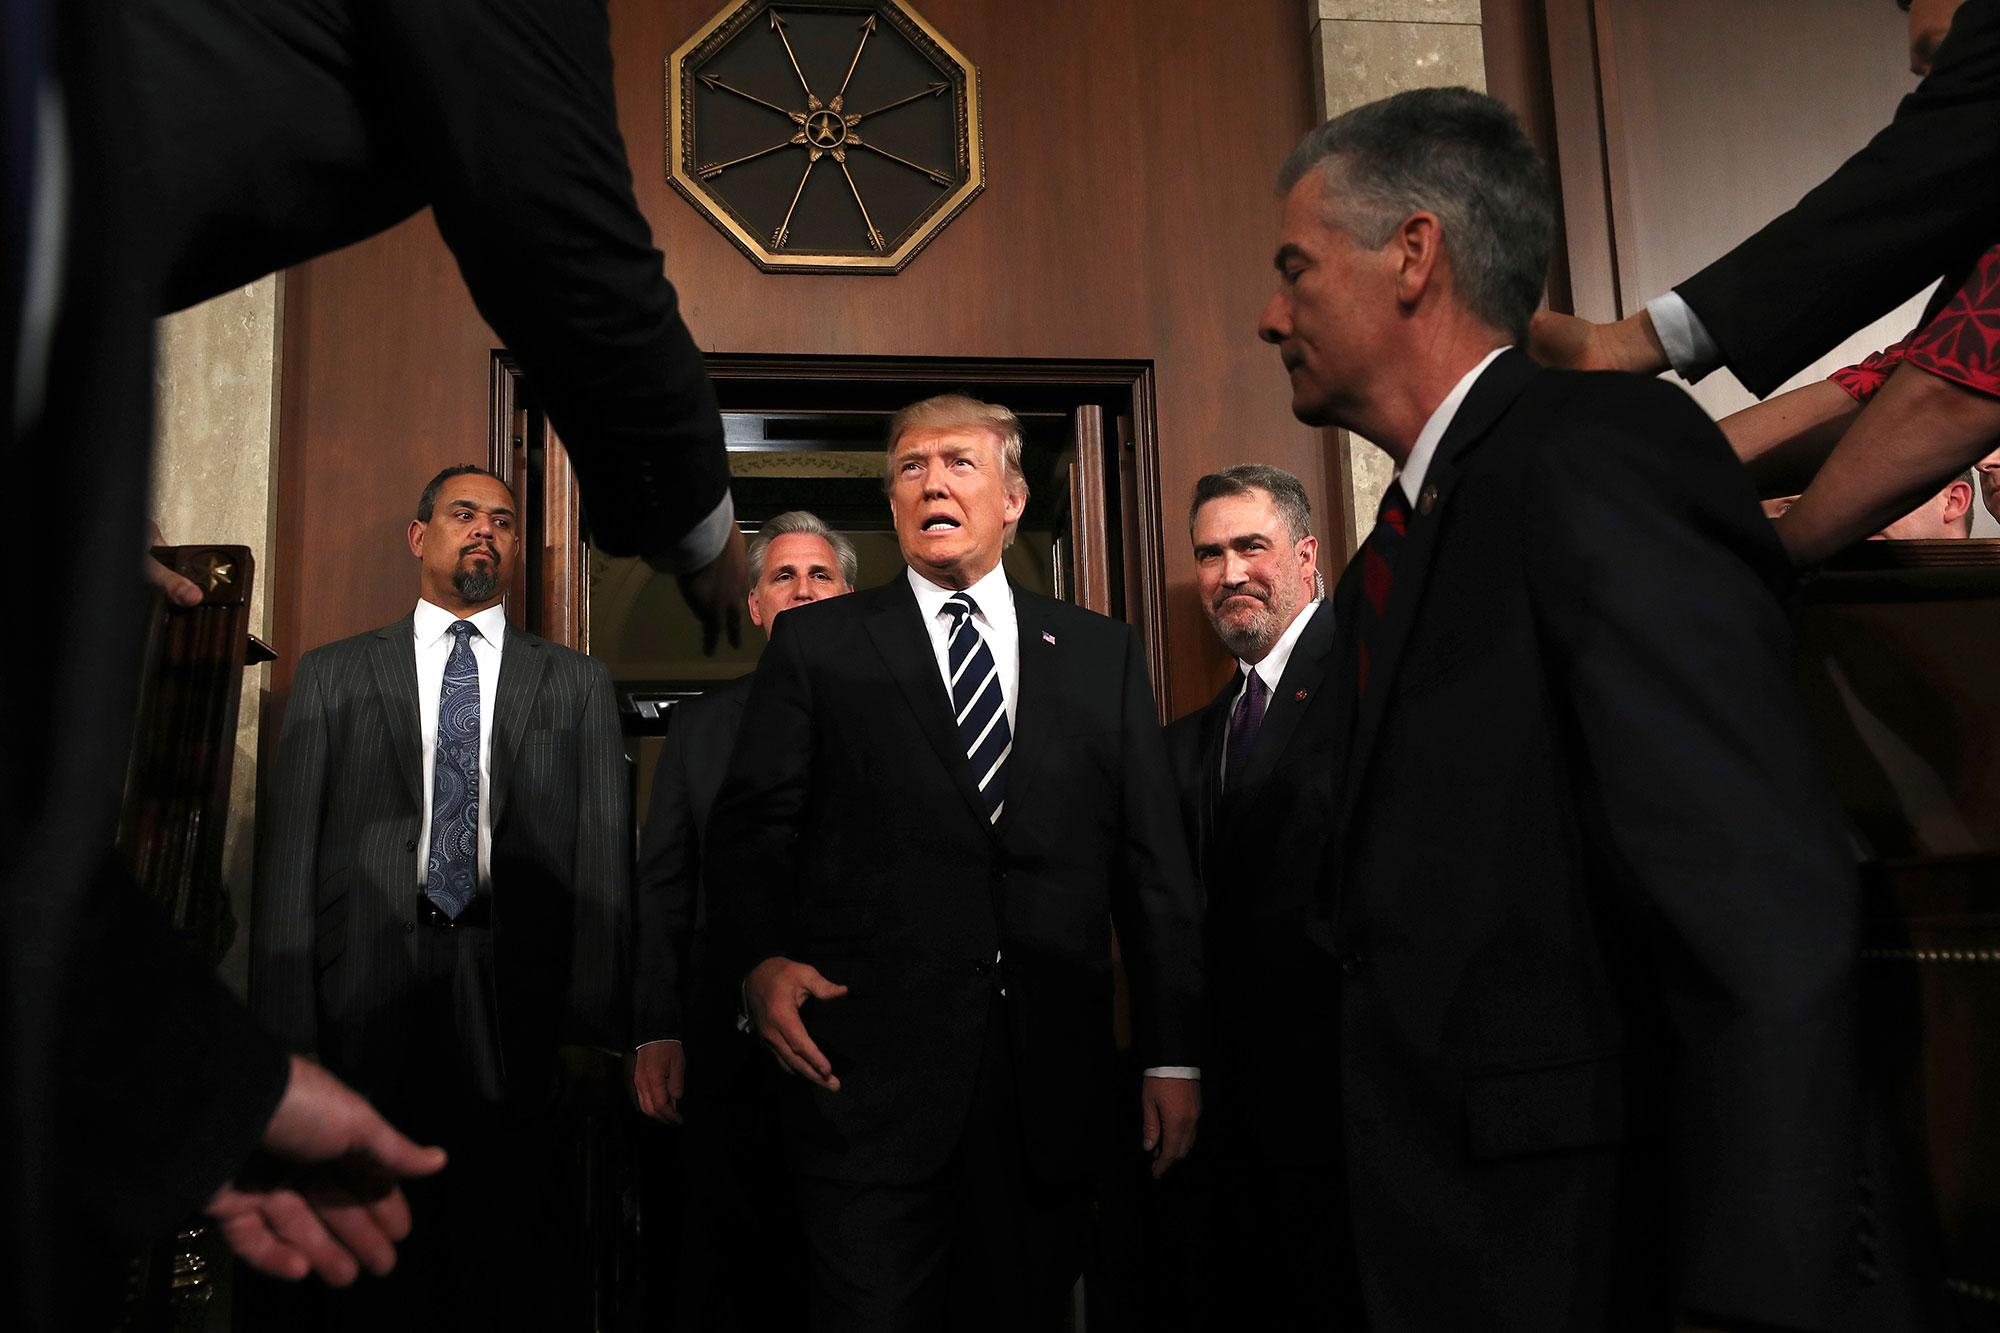 <p>President Donald Trump arrives on Capitol Hill in Washington, Tuesday, Feb. 28, 2017, for his address to a joint session of Congress. (Jim Lo Scalzo/Pool Image via AP) </p>